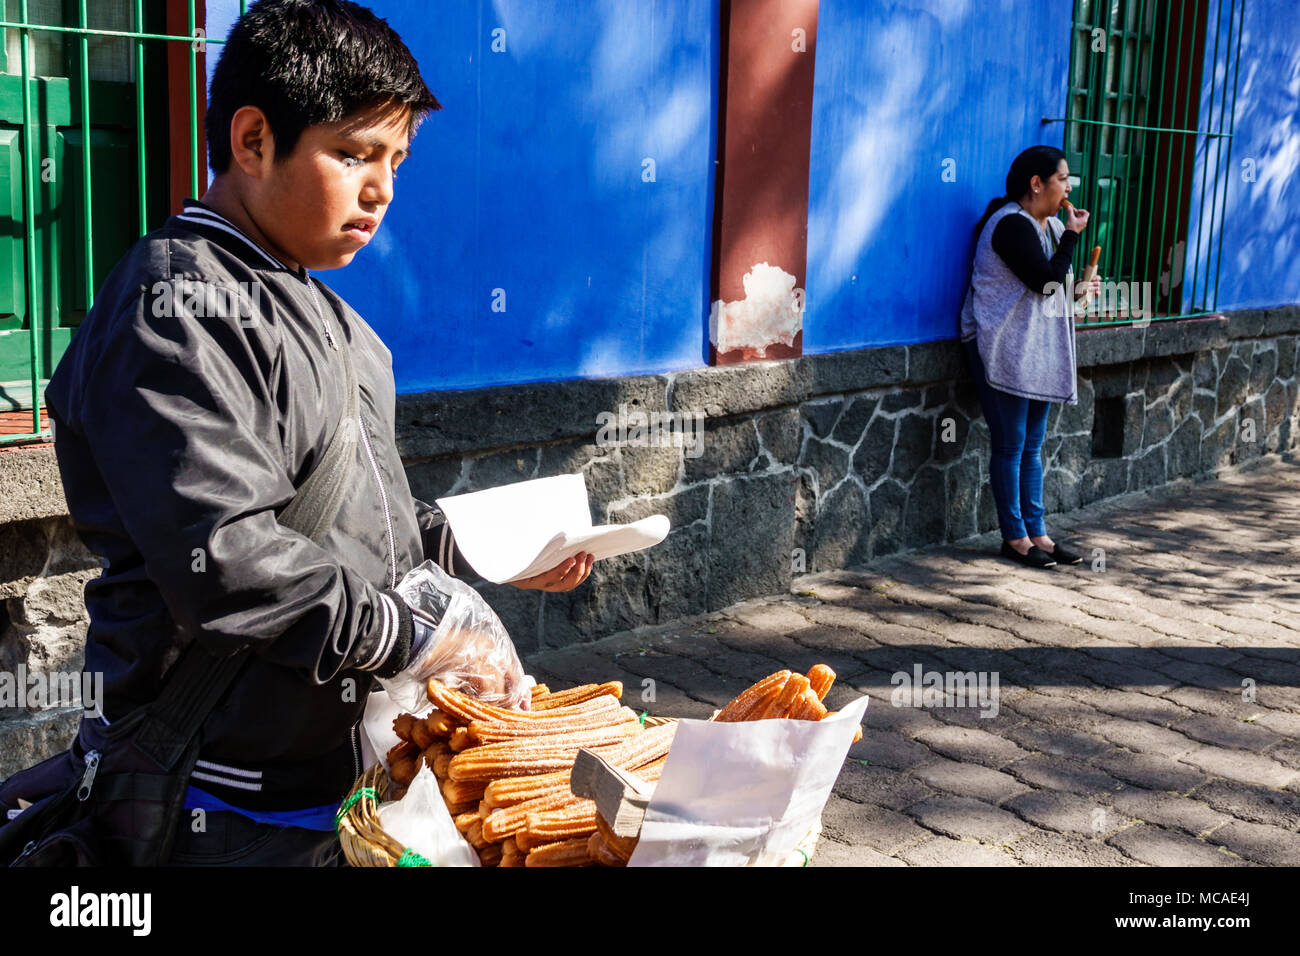 Mexico City Mexico Ciudad de Federal District Distrito DF D.F. CDMX Mexican Hispanic Coyoacan Del Carmen Museo Frida Kahlo museum Caza Azul Blue House exterior boy working sidewalk vendor churros North America American - Stock Image